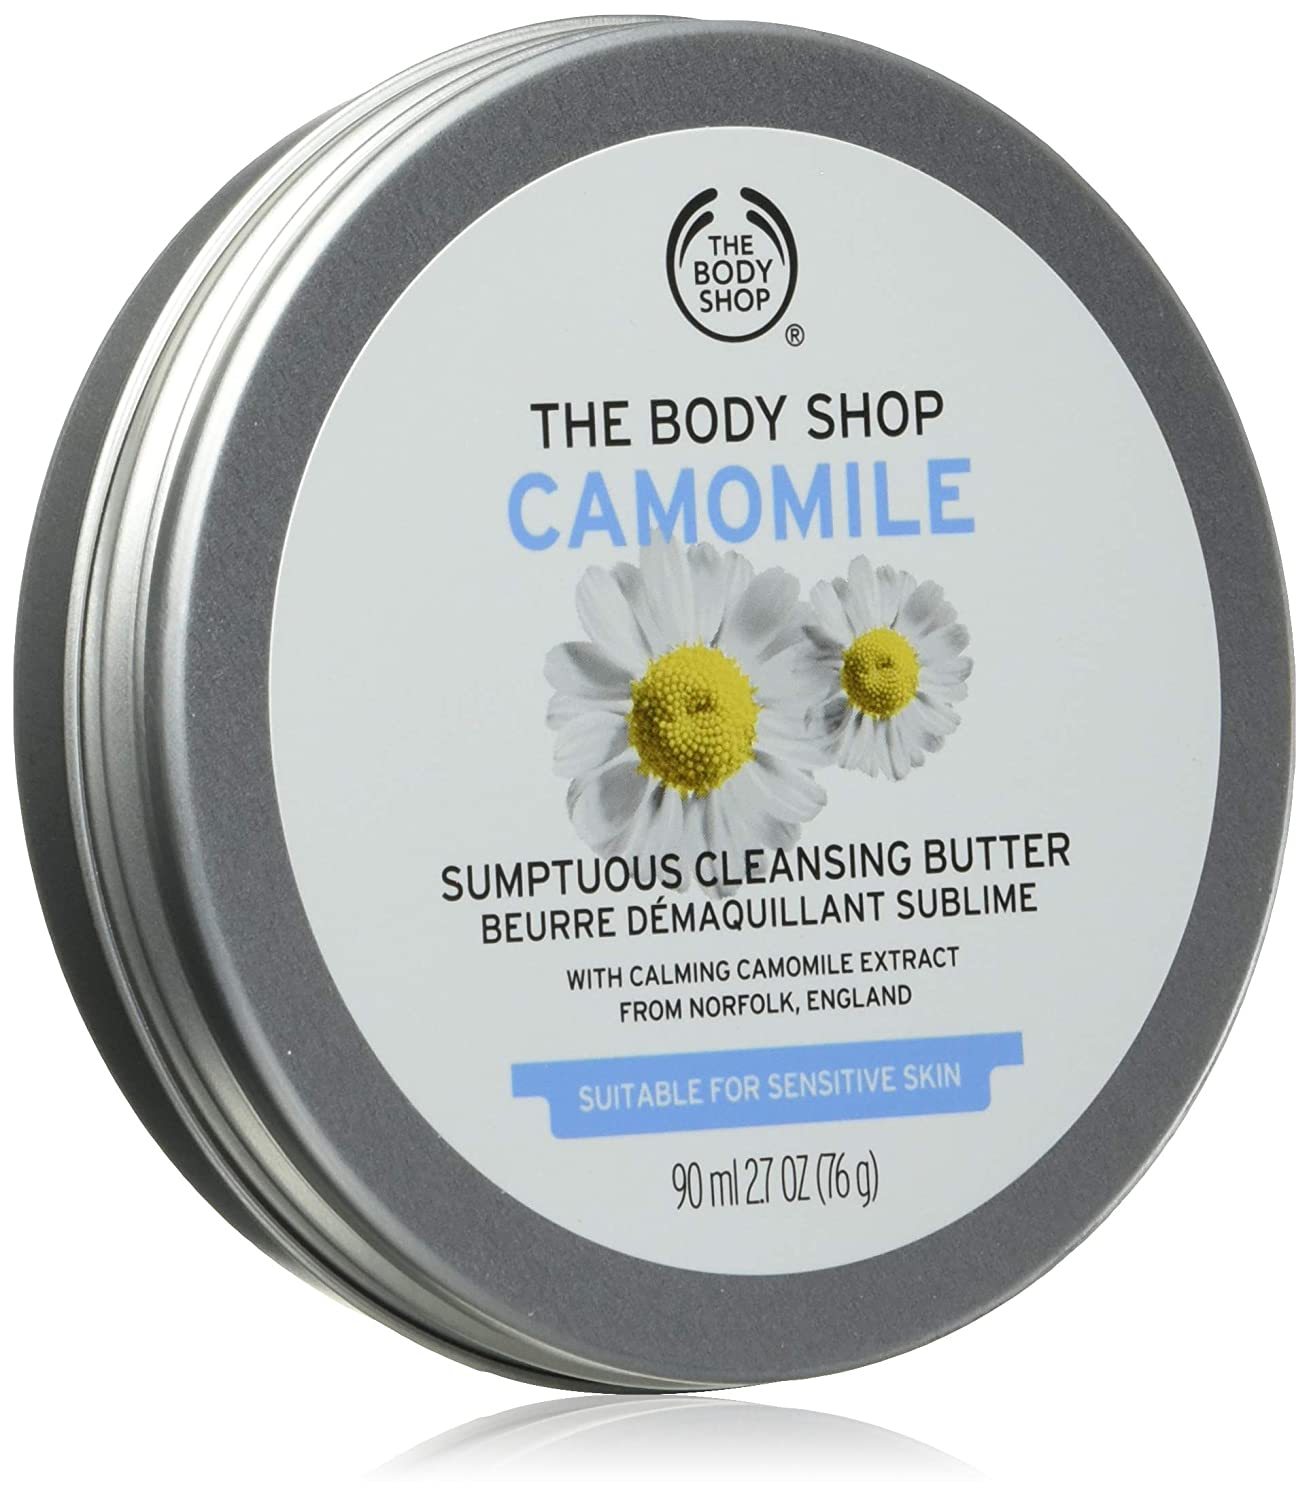 The Body Shop Camomile Sumptuous Cleansing Butter, 2.7 Oz